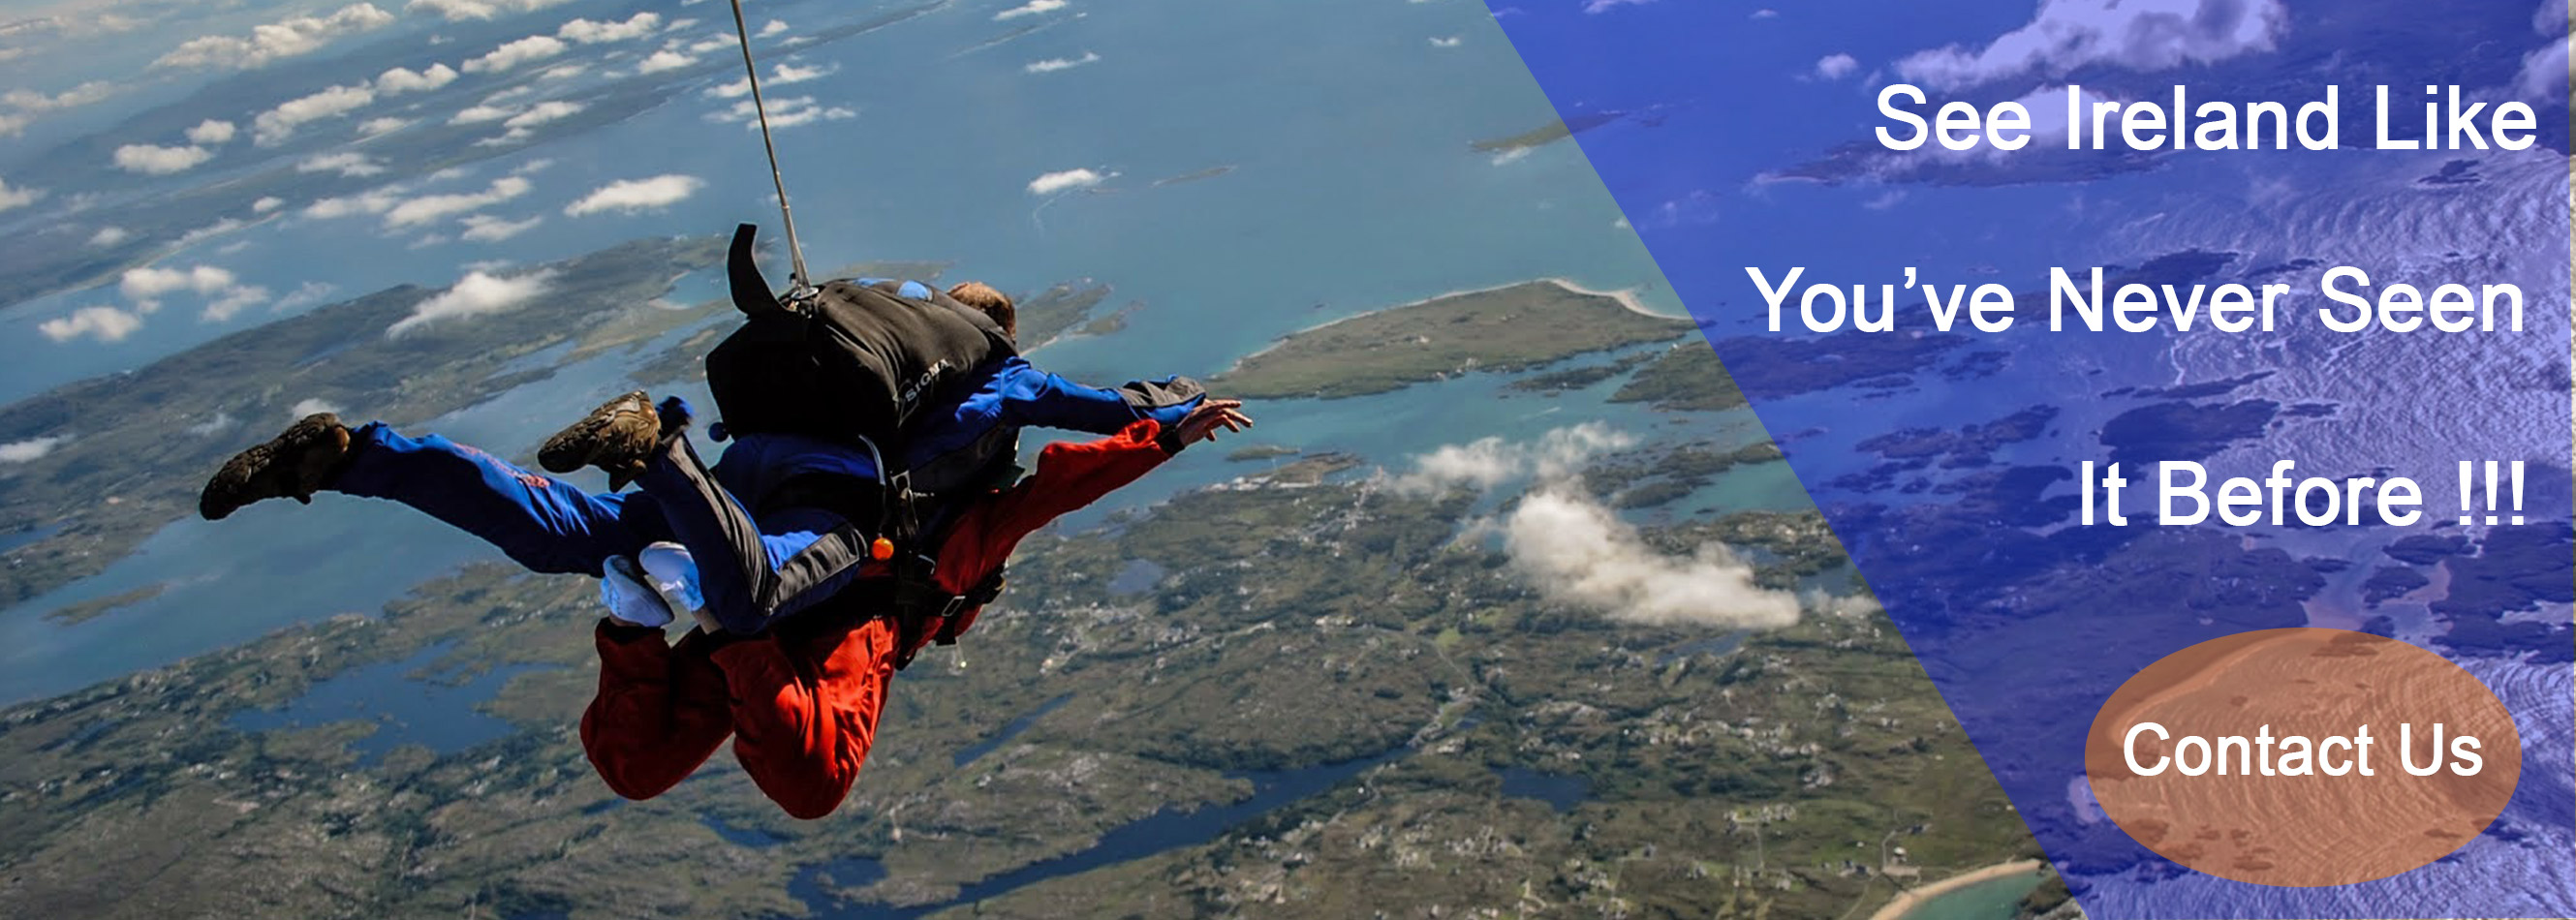 See Ireland like you've never seen it before with Skydive.ie and the Irish Parachute Club